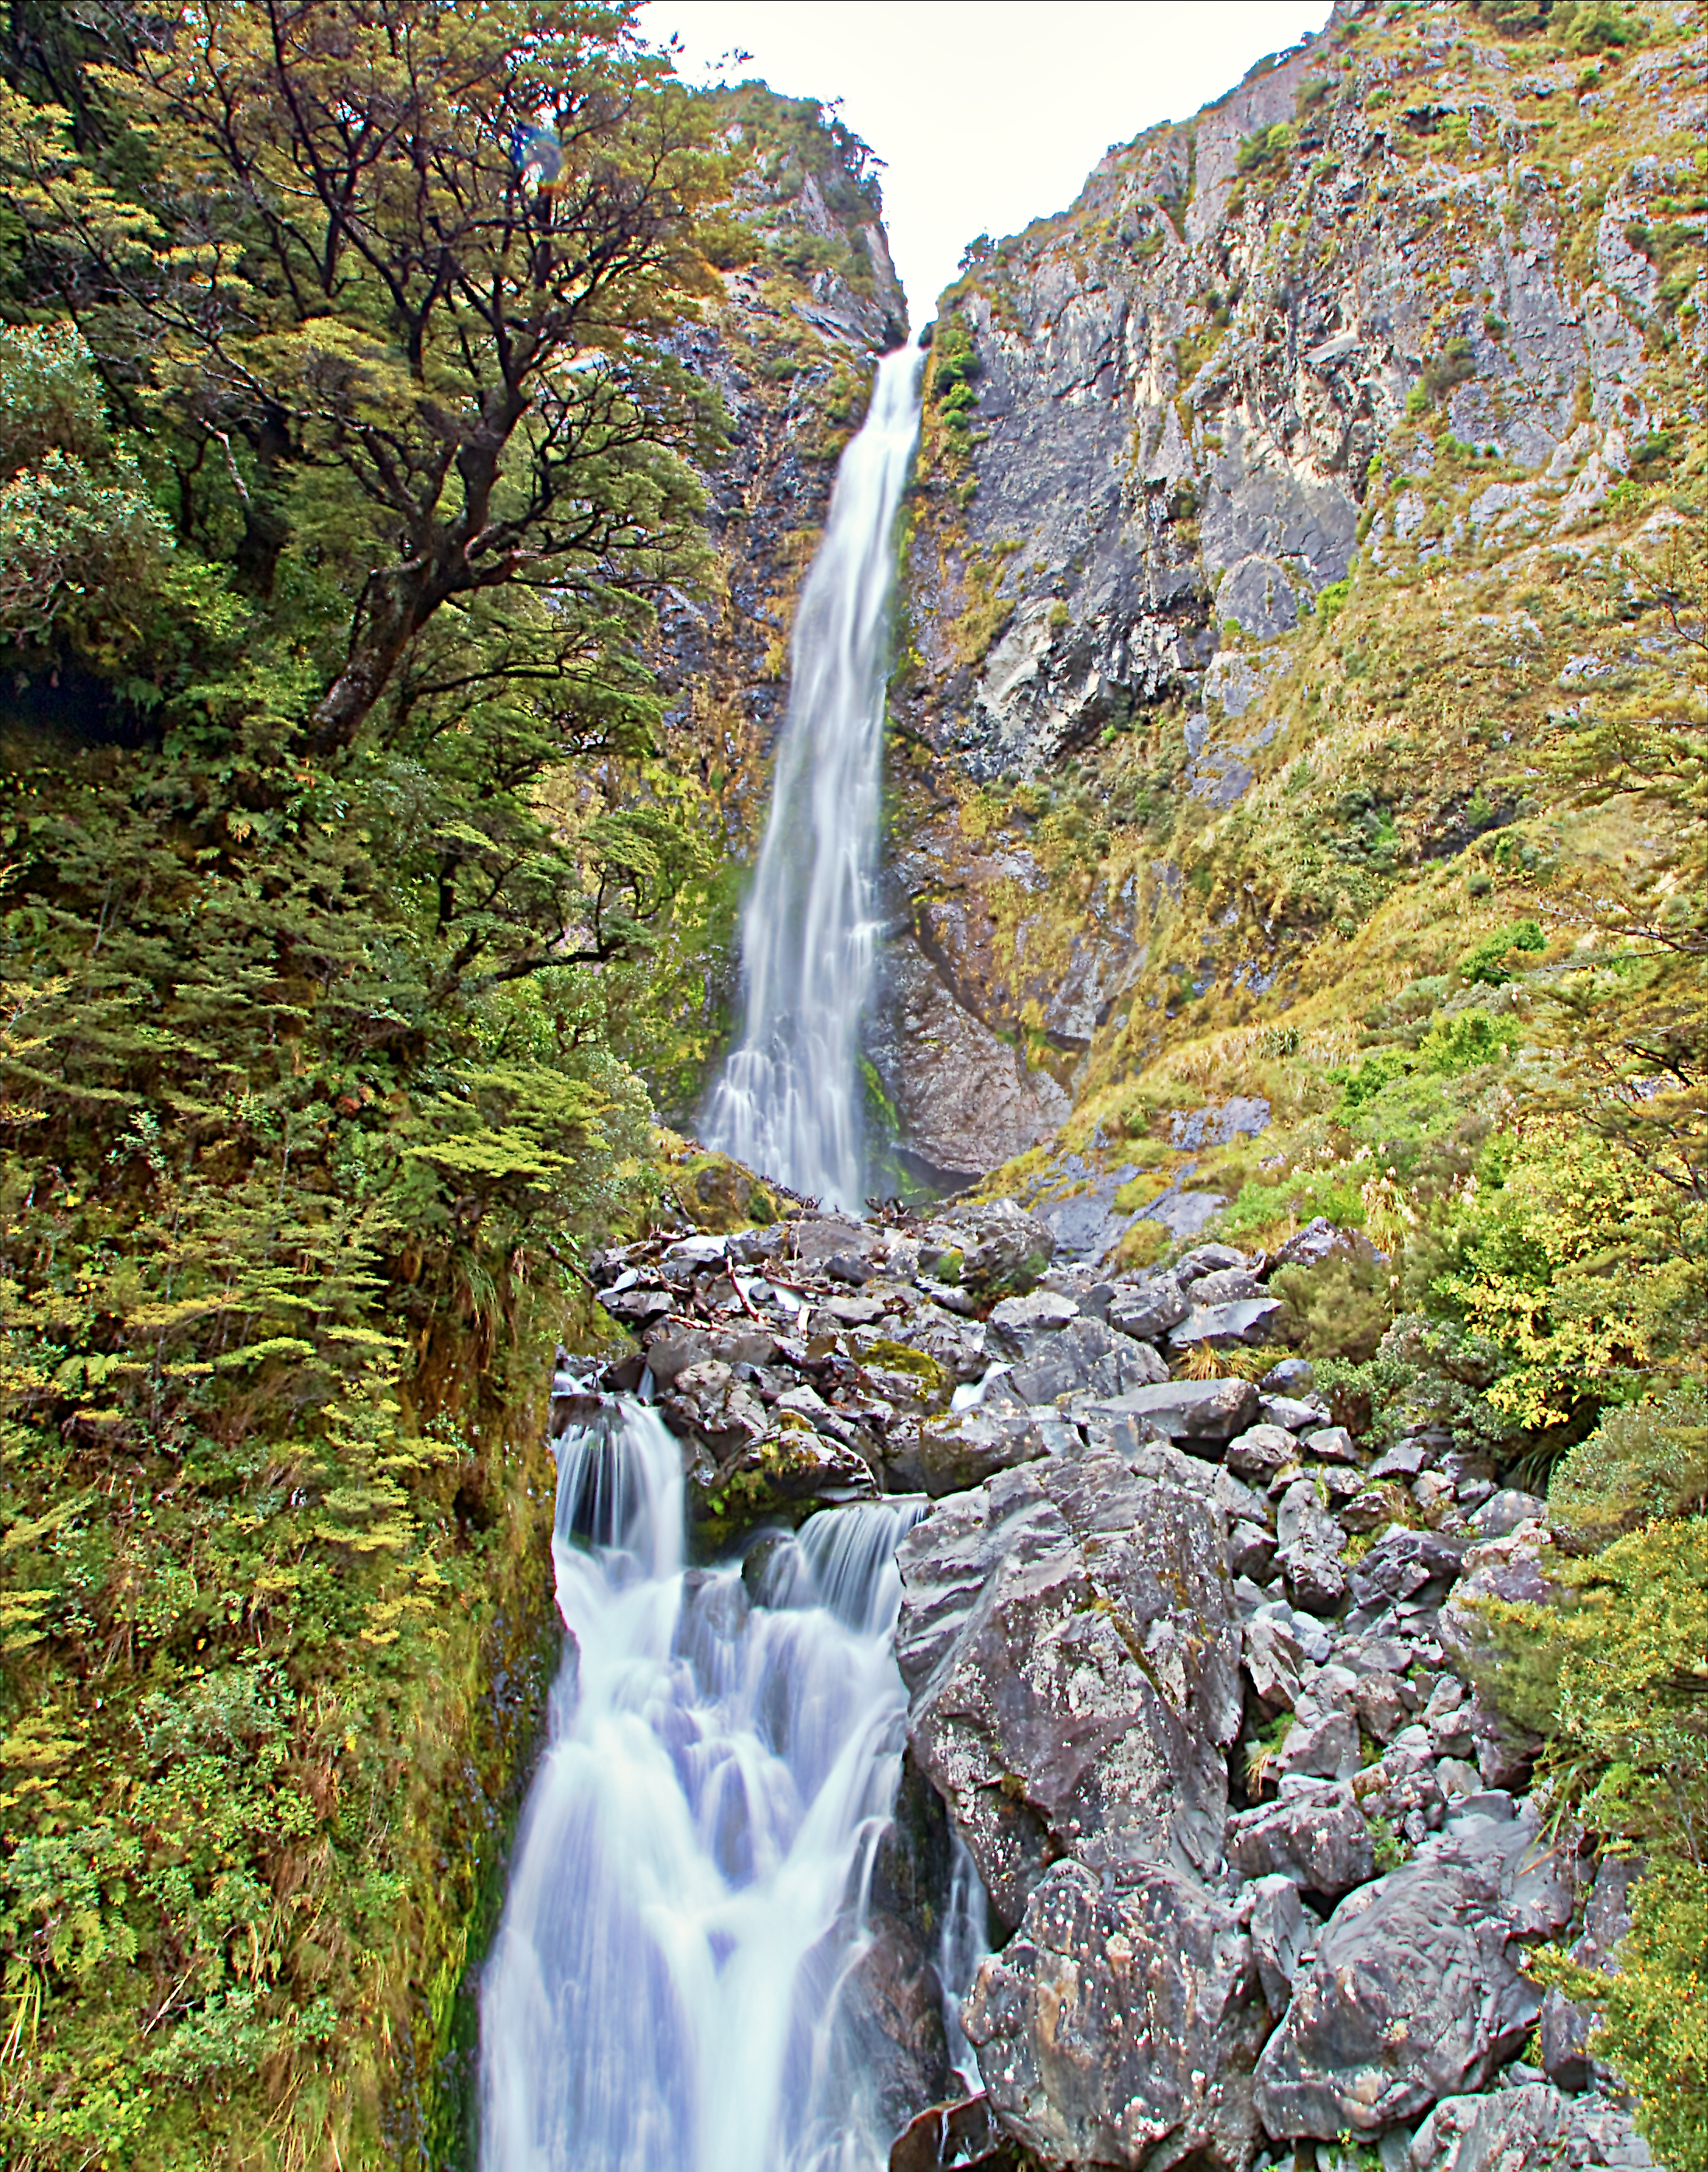 The Devils Punchbowl Waterfall, Arthurs Pass